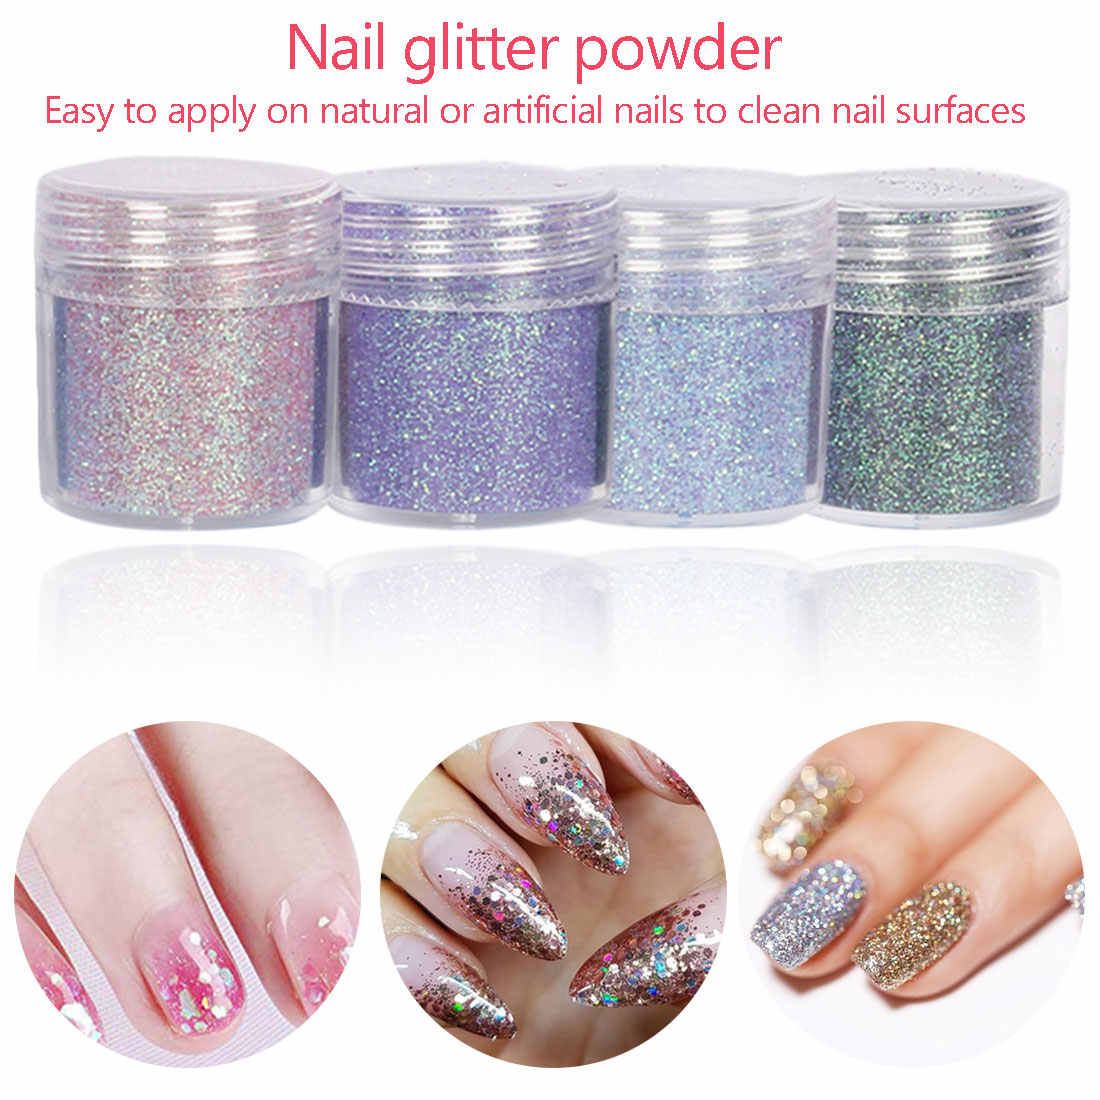 10g/Box Dipping Nail Powder Glitter Gradient French Nail Holographic Dipping Nail Art Natural Dry Without Lamp Cure